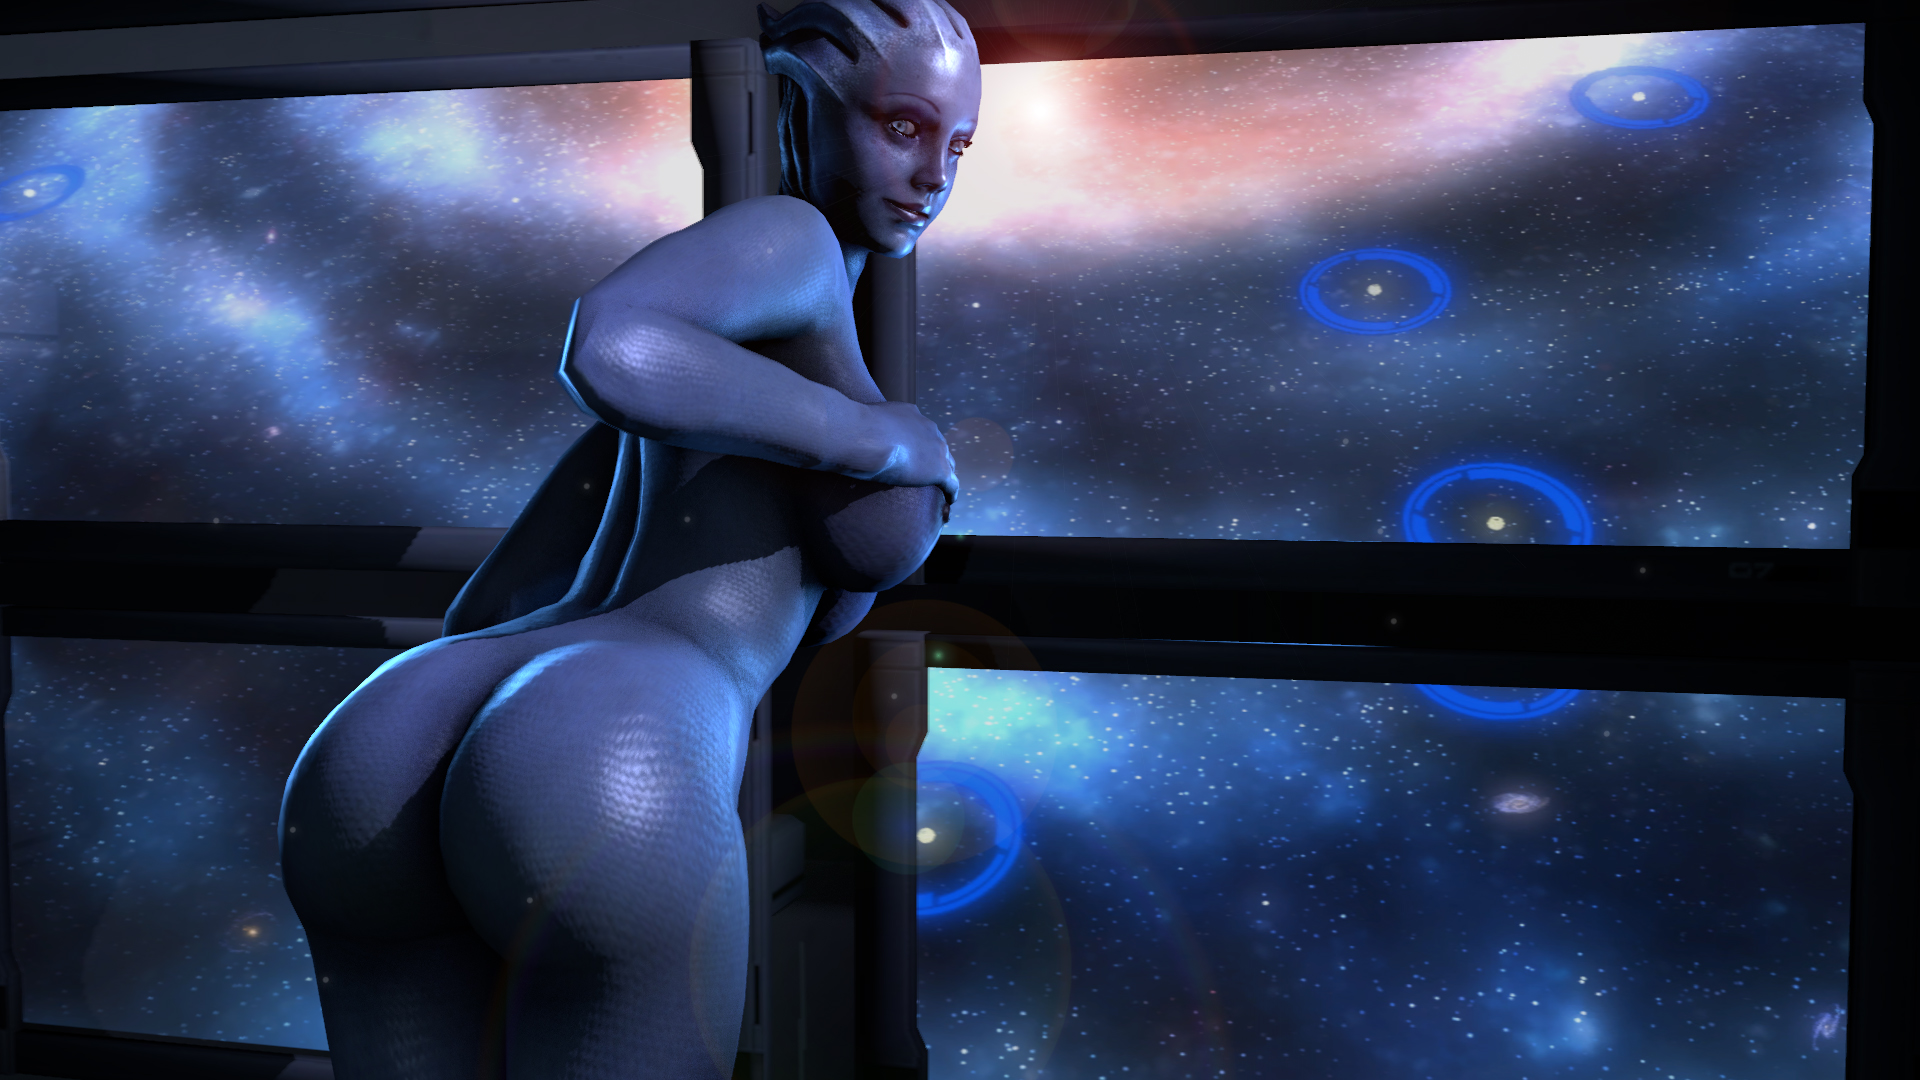 Mass effect liara naked photos fucking scene